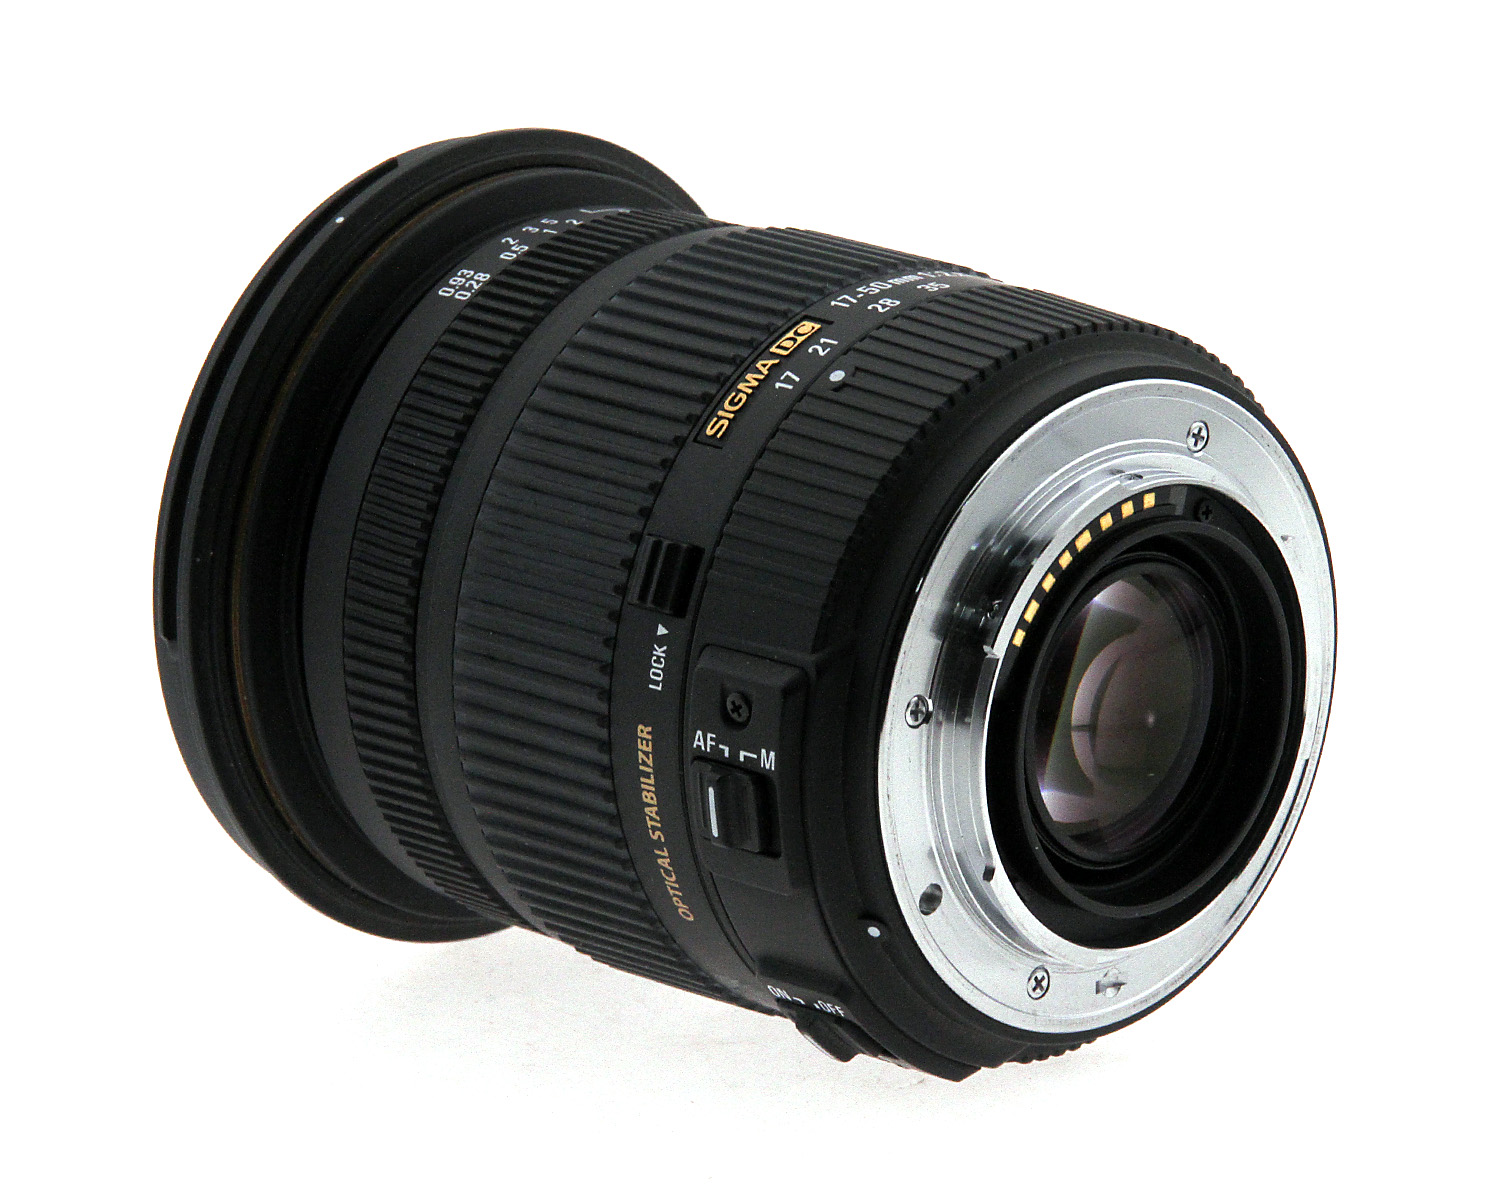 sigma 17 50mm f 2 8 ex dc os hsm zoom lens for sony open box. Black Bedroom Furniture Sets. Home Design Ideas